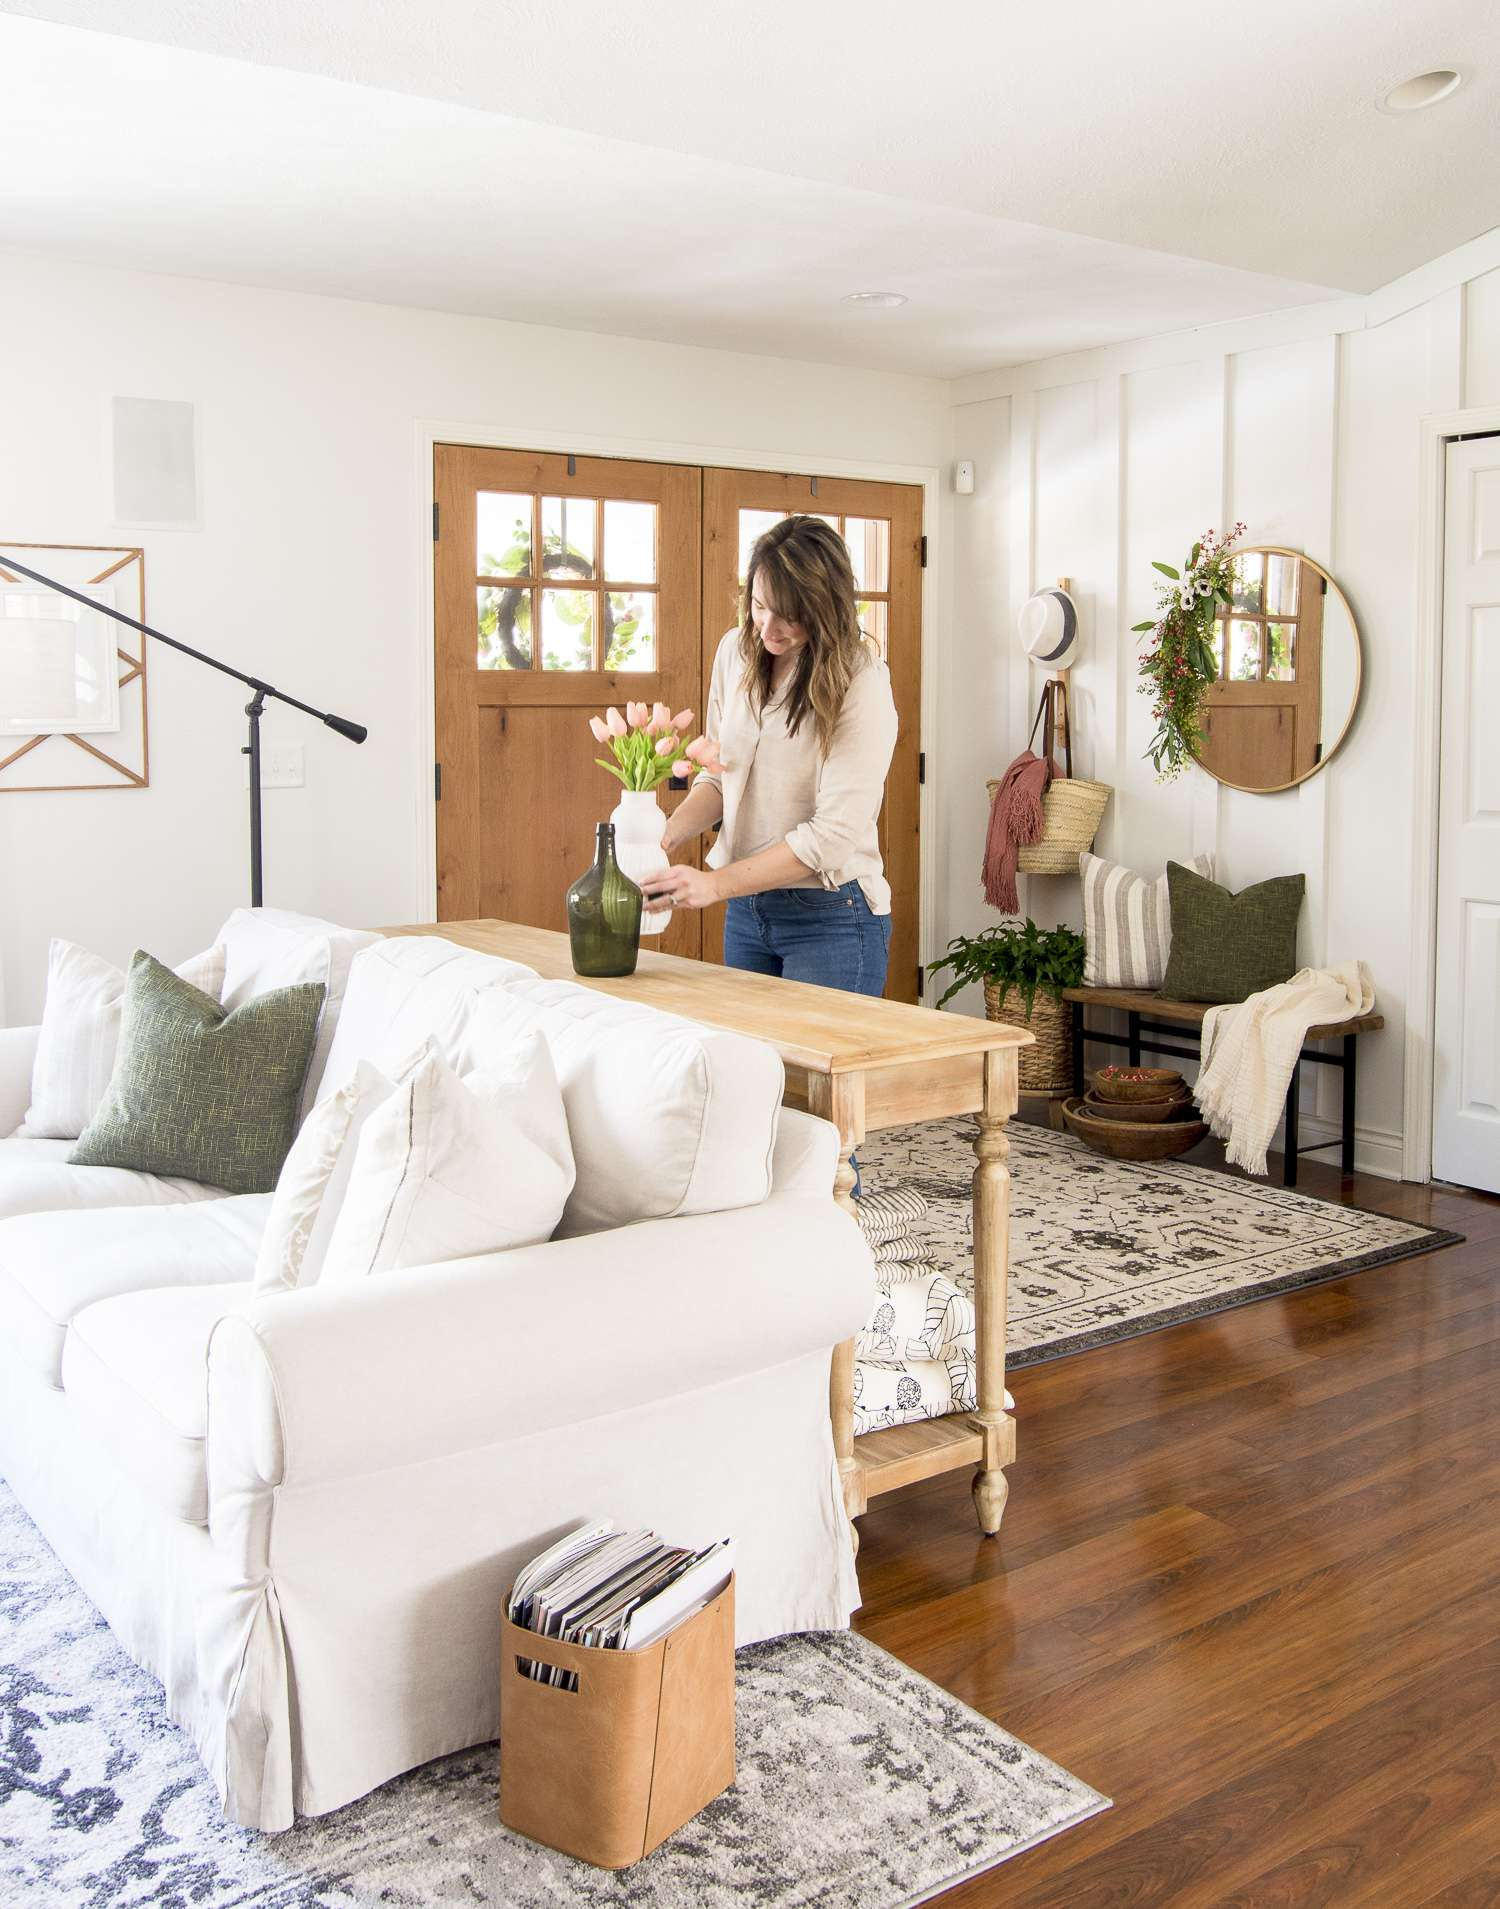 Decorating on a budget by shopping your home.